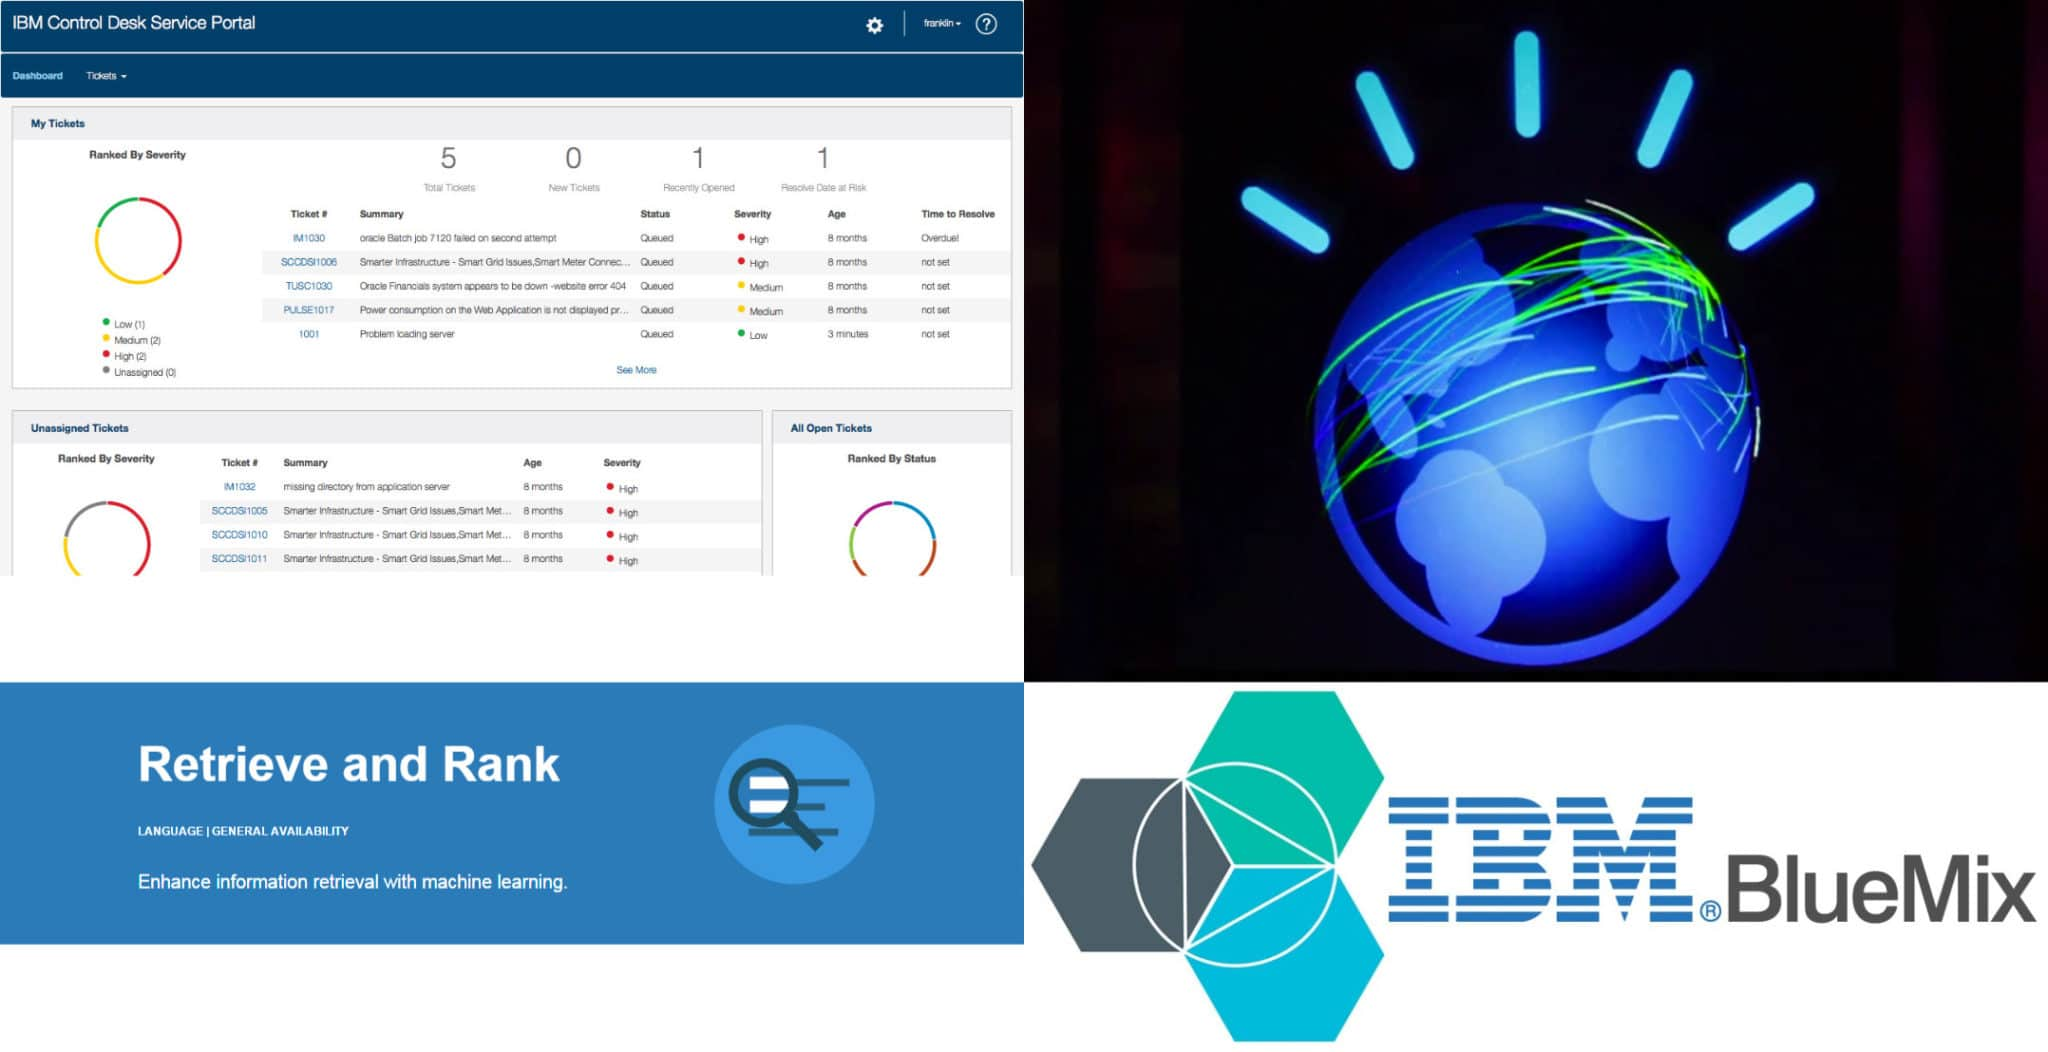 IBM Maximo: Service Desk management using IBM Watson